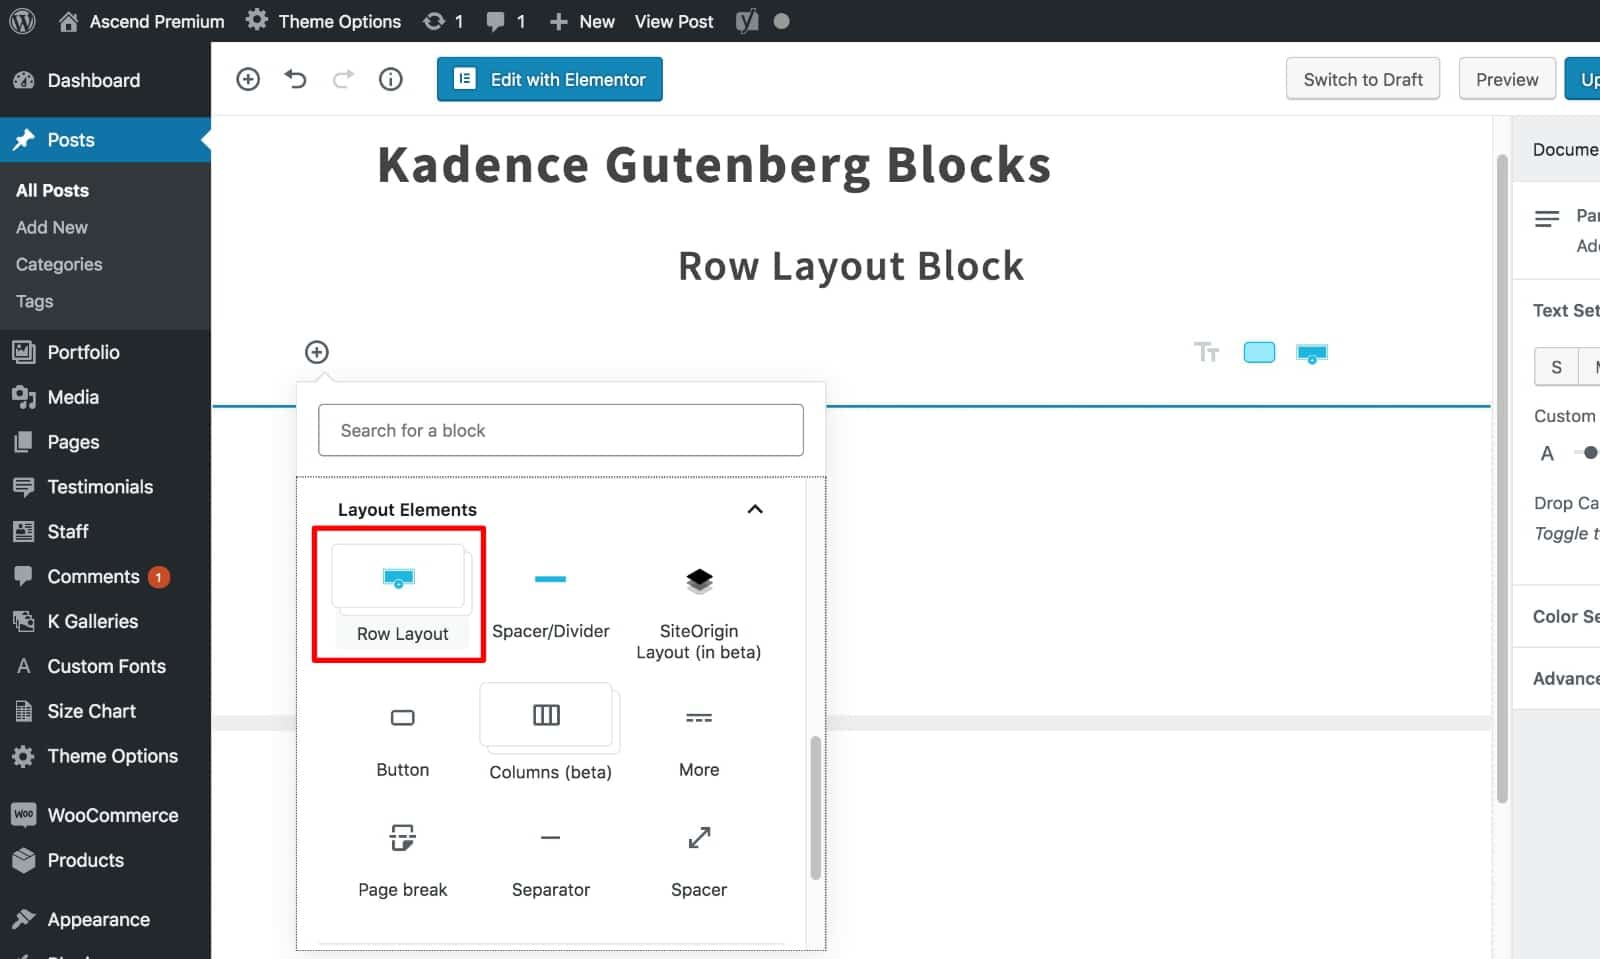 Select Row Layout Block Kadence